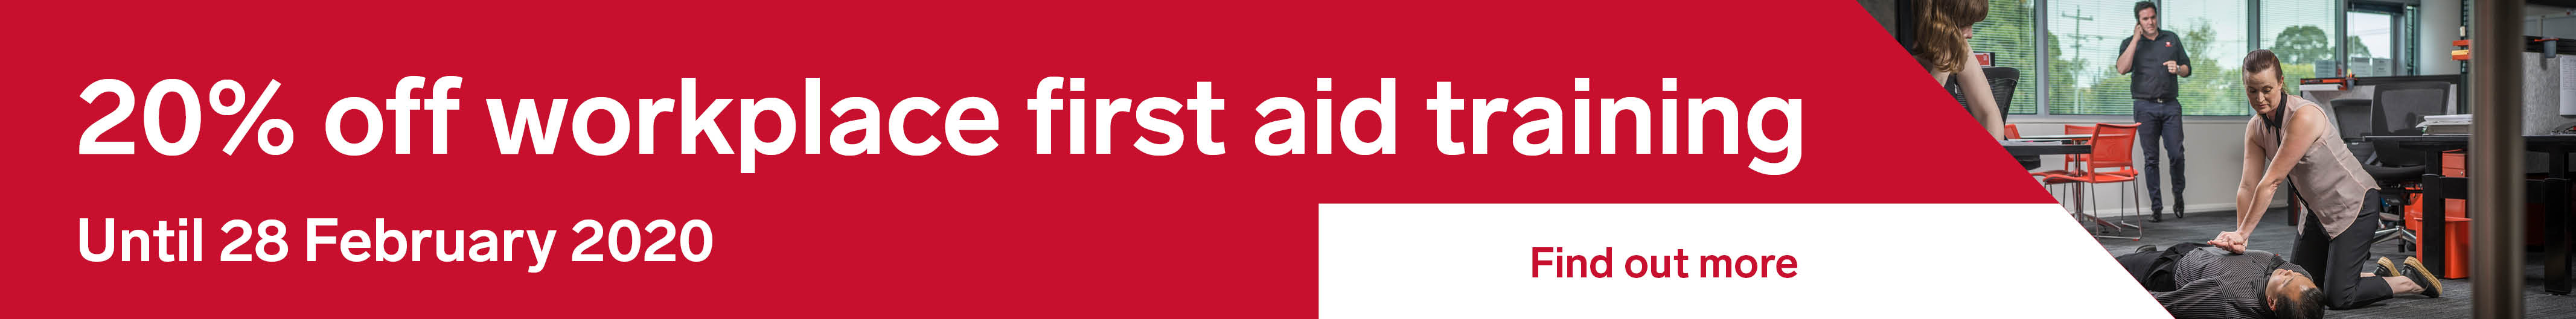 Workplace first aid deal_4267x529px_v2